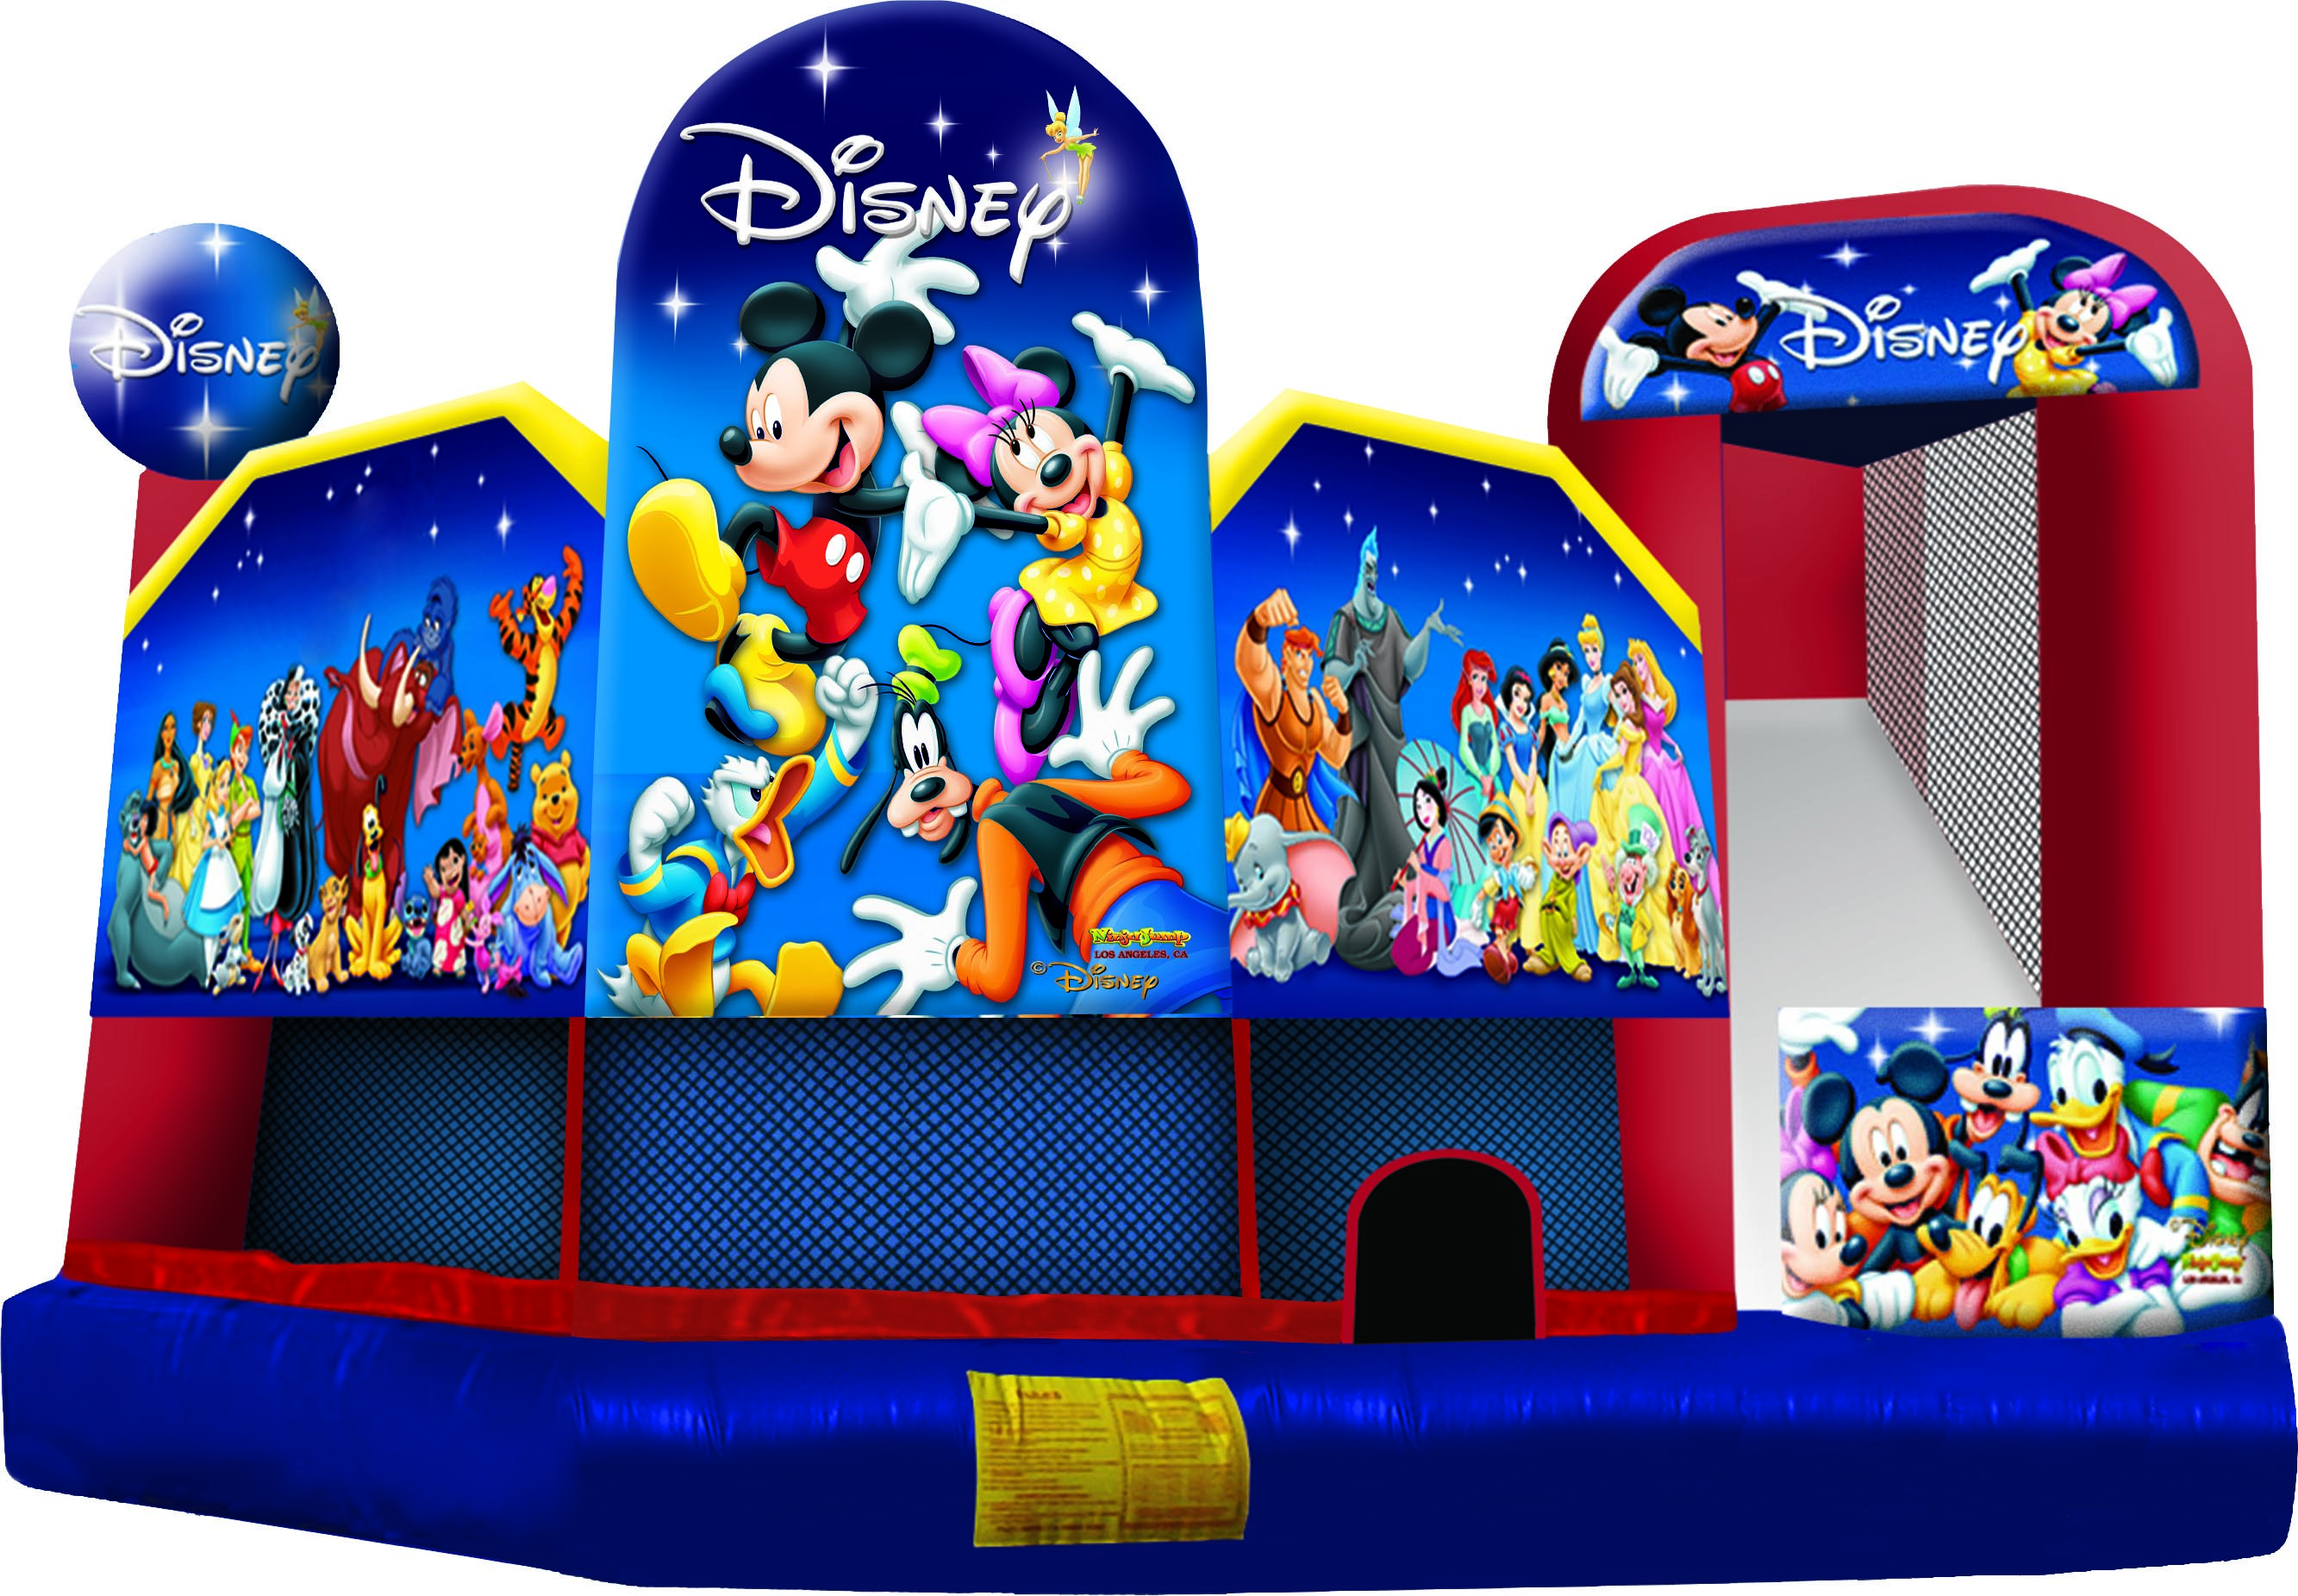 Disney 5 In 1 Combo Combo Bounce House